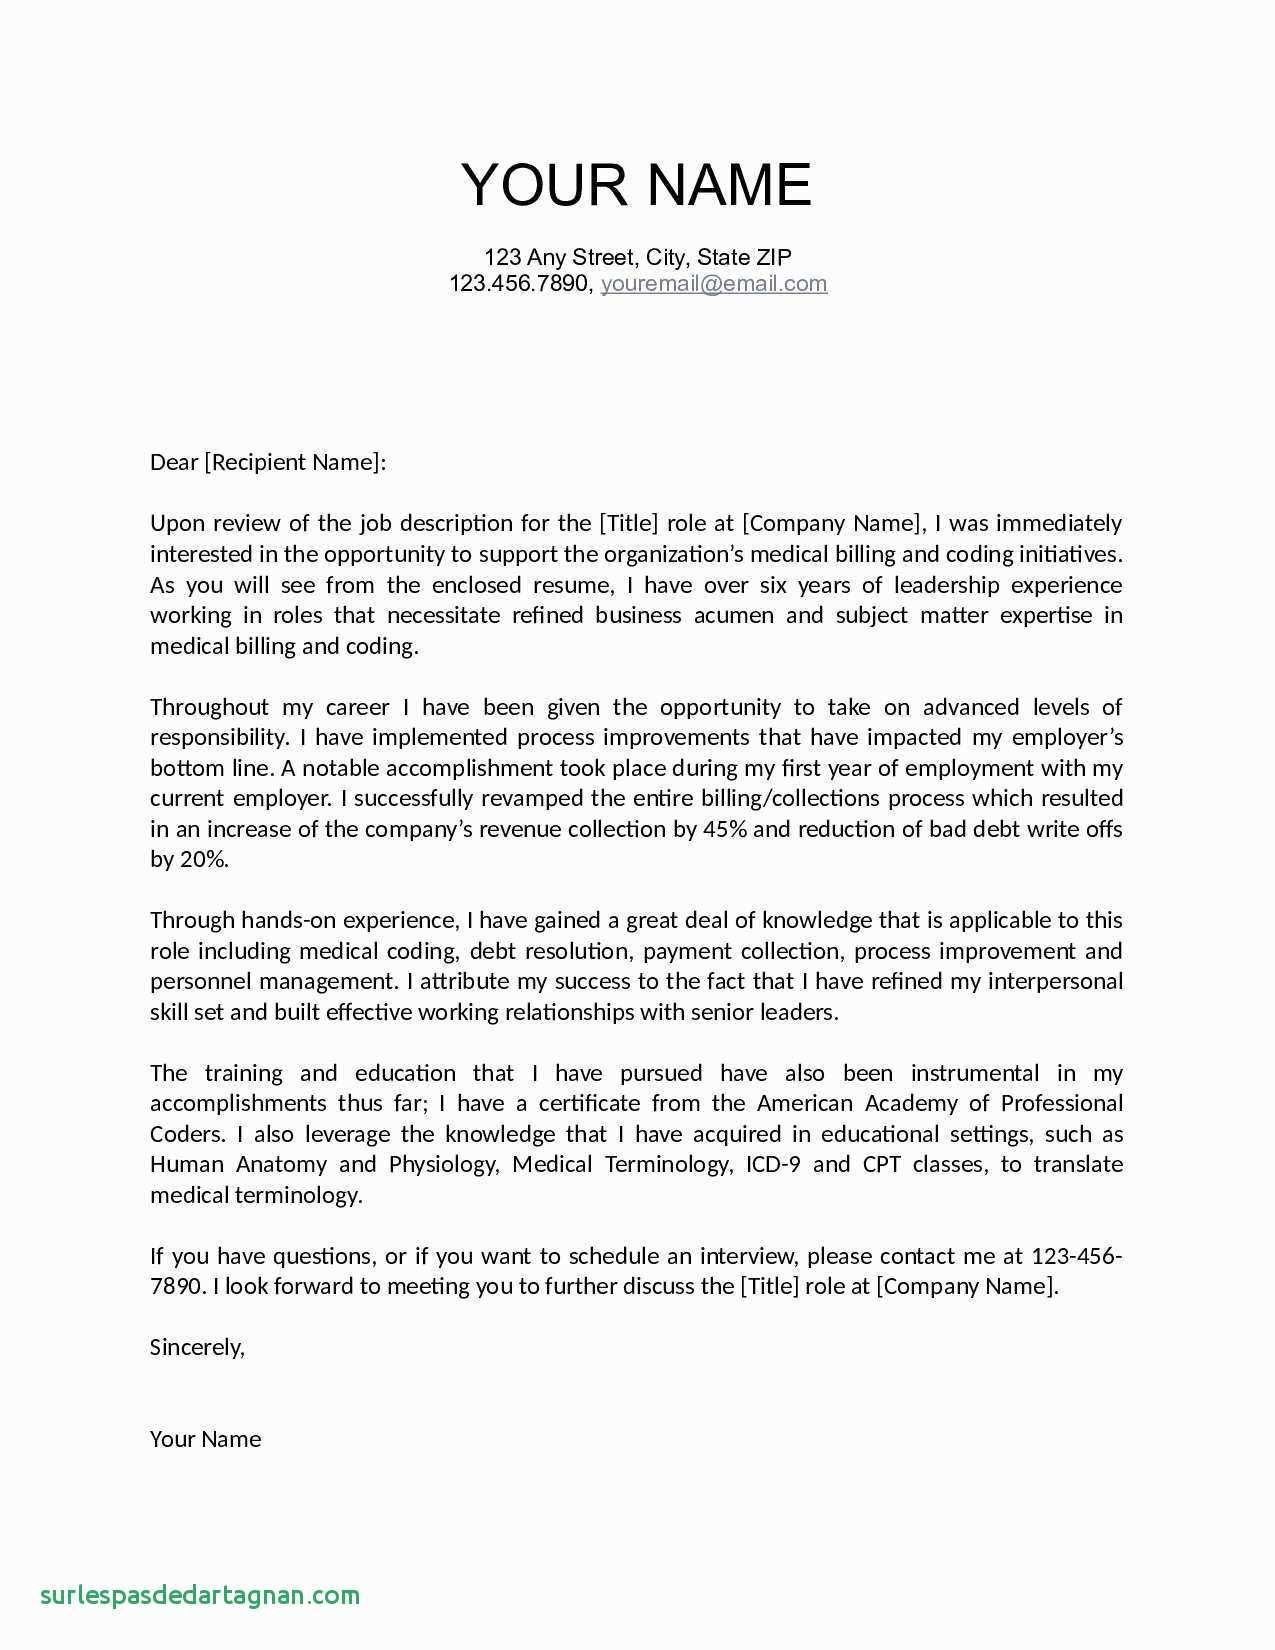 Business Collaboration Letter Template - Business Partnership Letter Template Inspirationa Fresh Job Fer